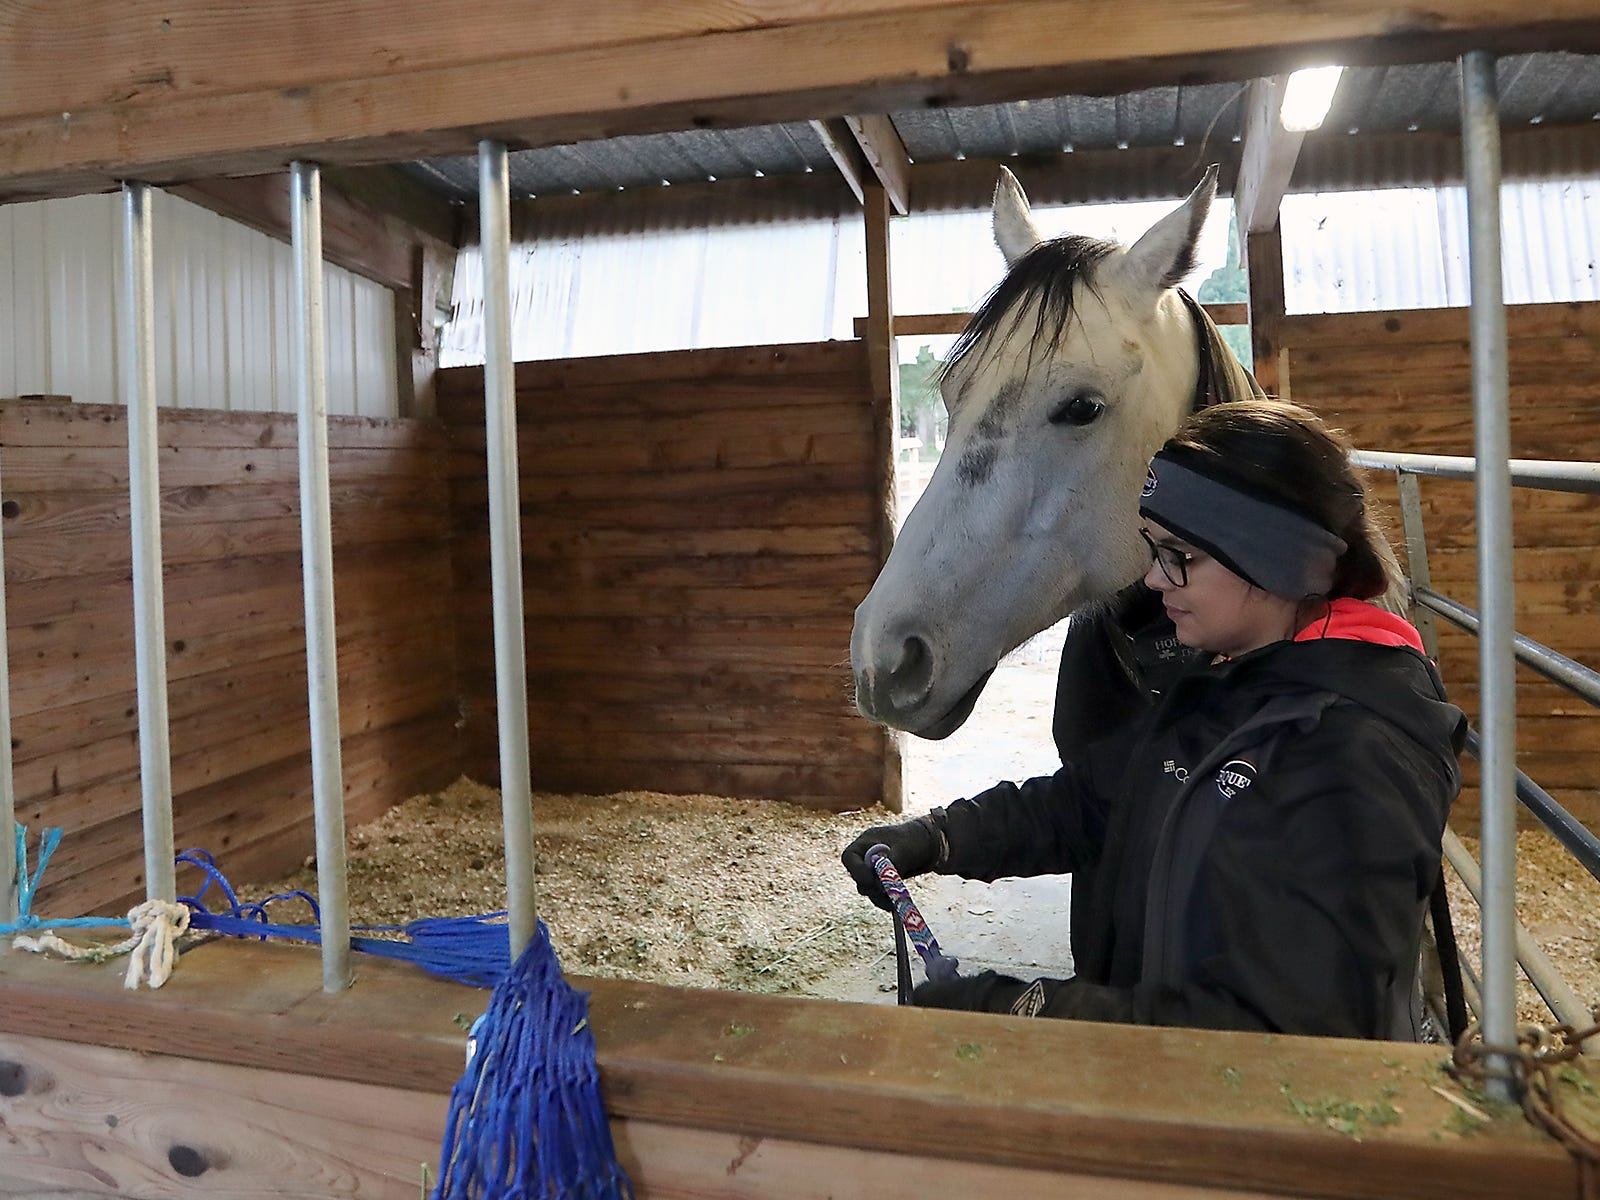 Teresa Morrell readies horse Pearl to be lead out of her stall and to the arena at the ARD Ranch in Silverdale on Thursday, February 7, 2019.